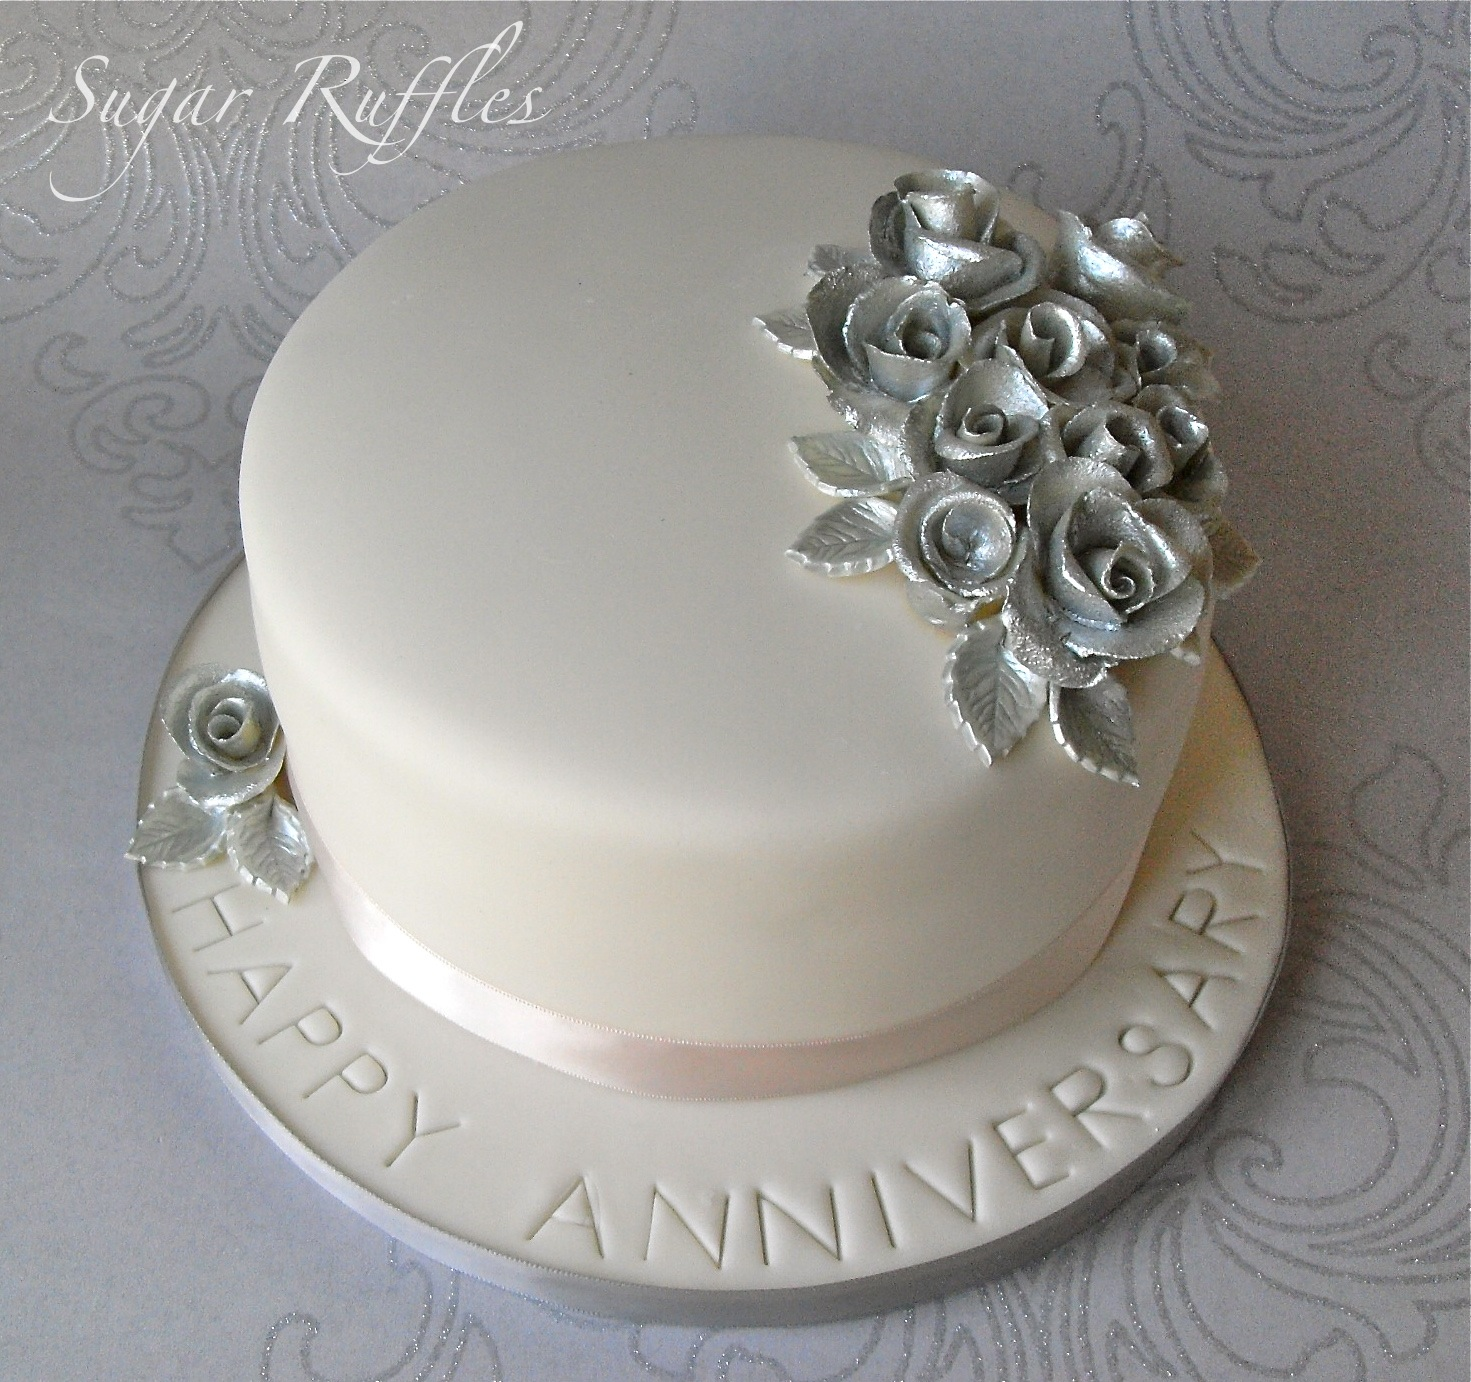 Cake Pictures For Anniversary : Wedding Anniversary Cakes - Tyler Living